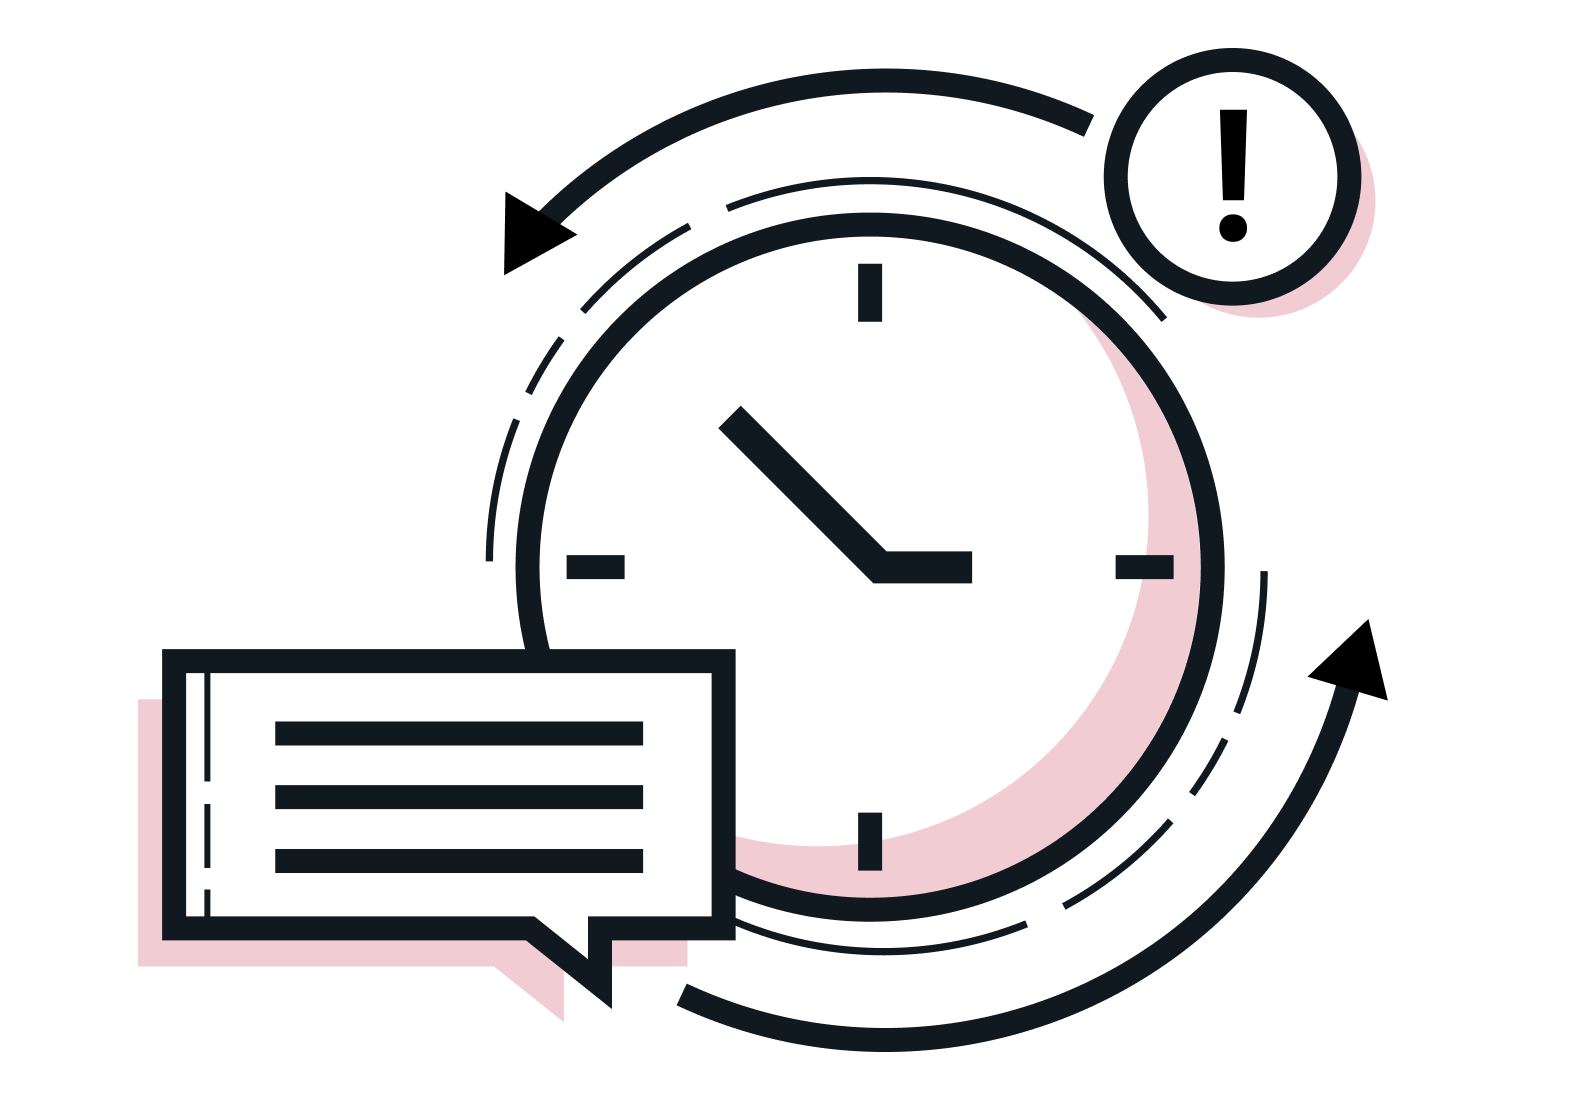 WARROOM swiftly retrieves messages to make you enable to respond to any issues or suggestions round the clock.